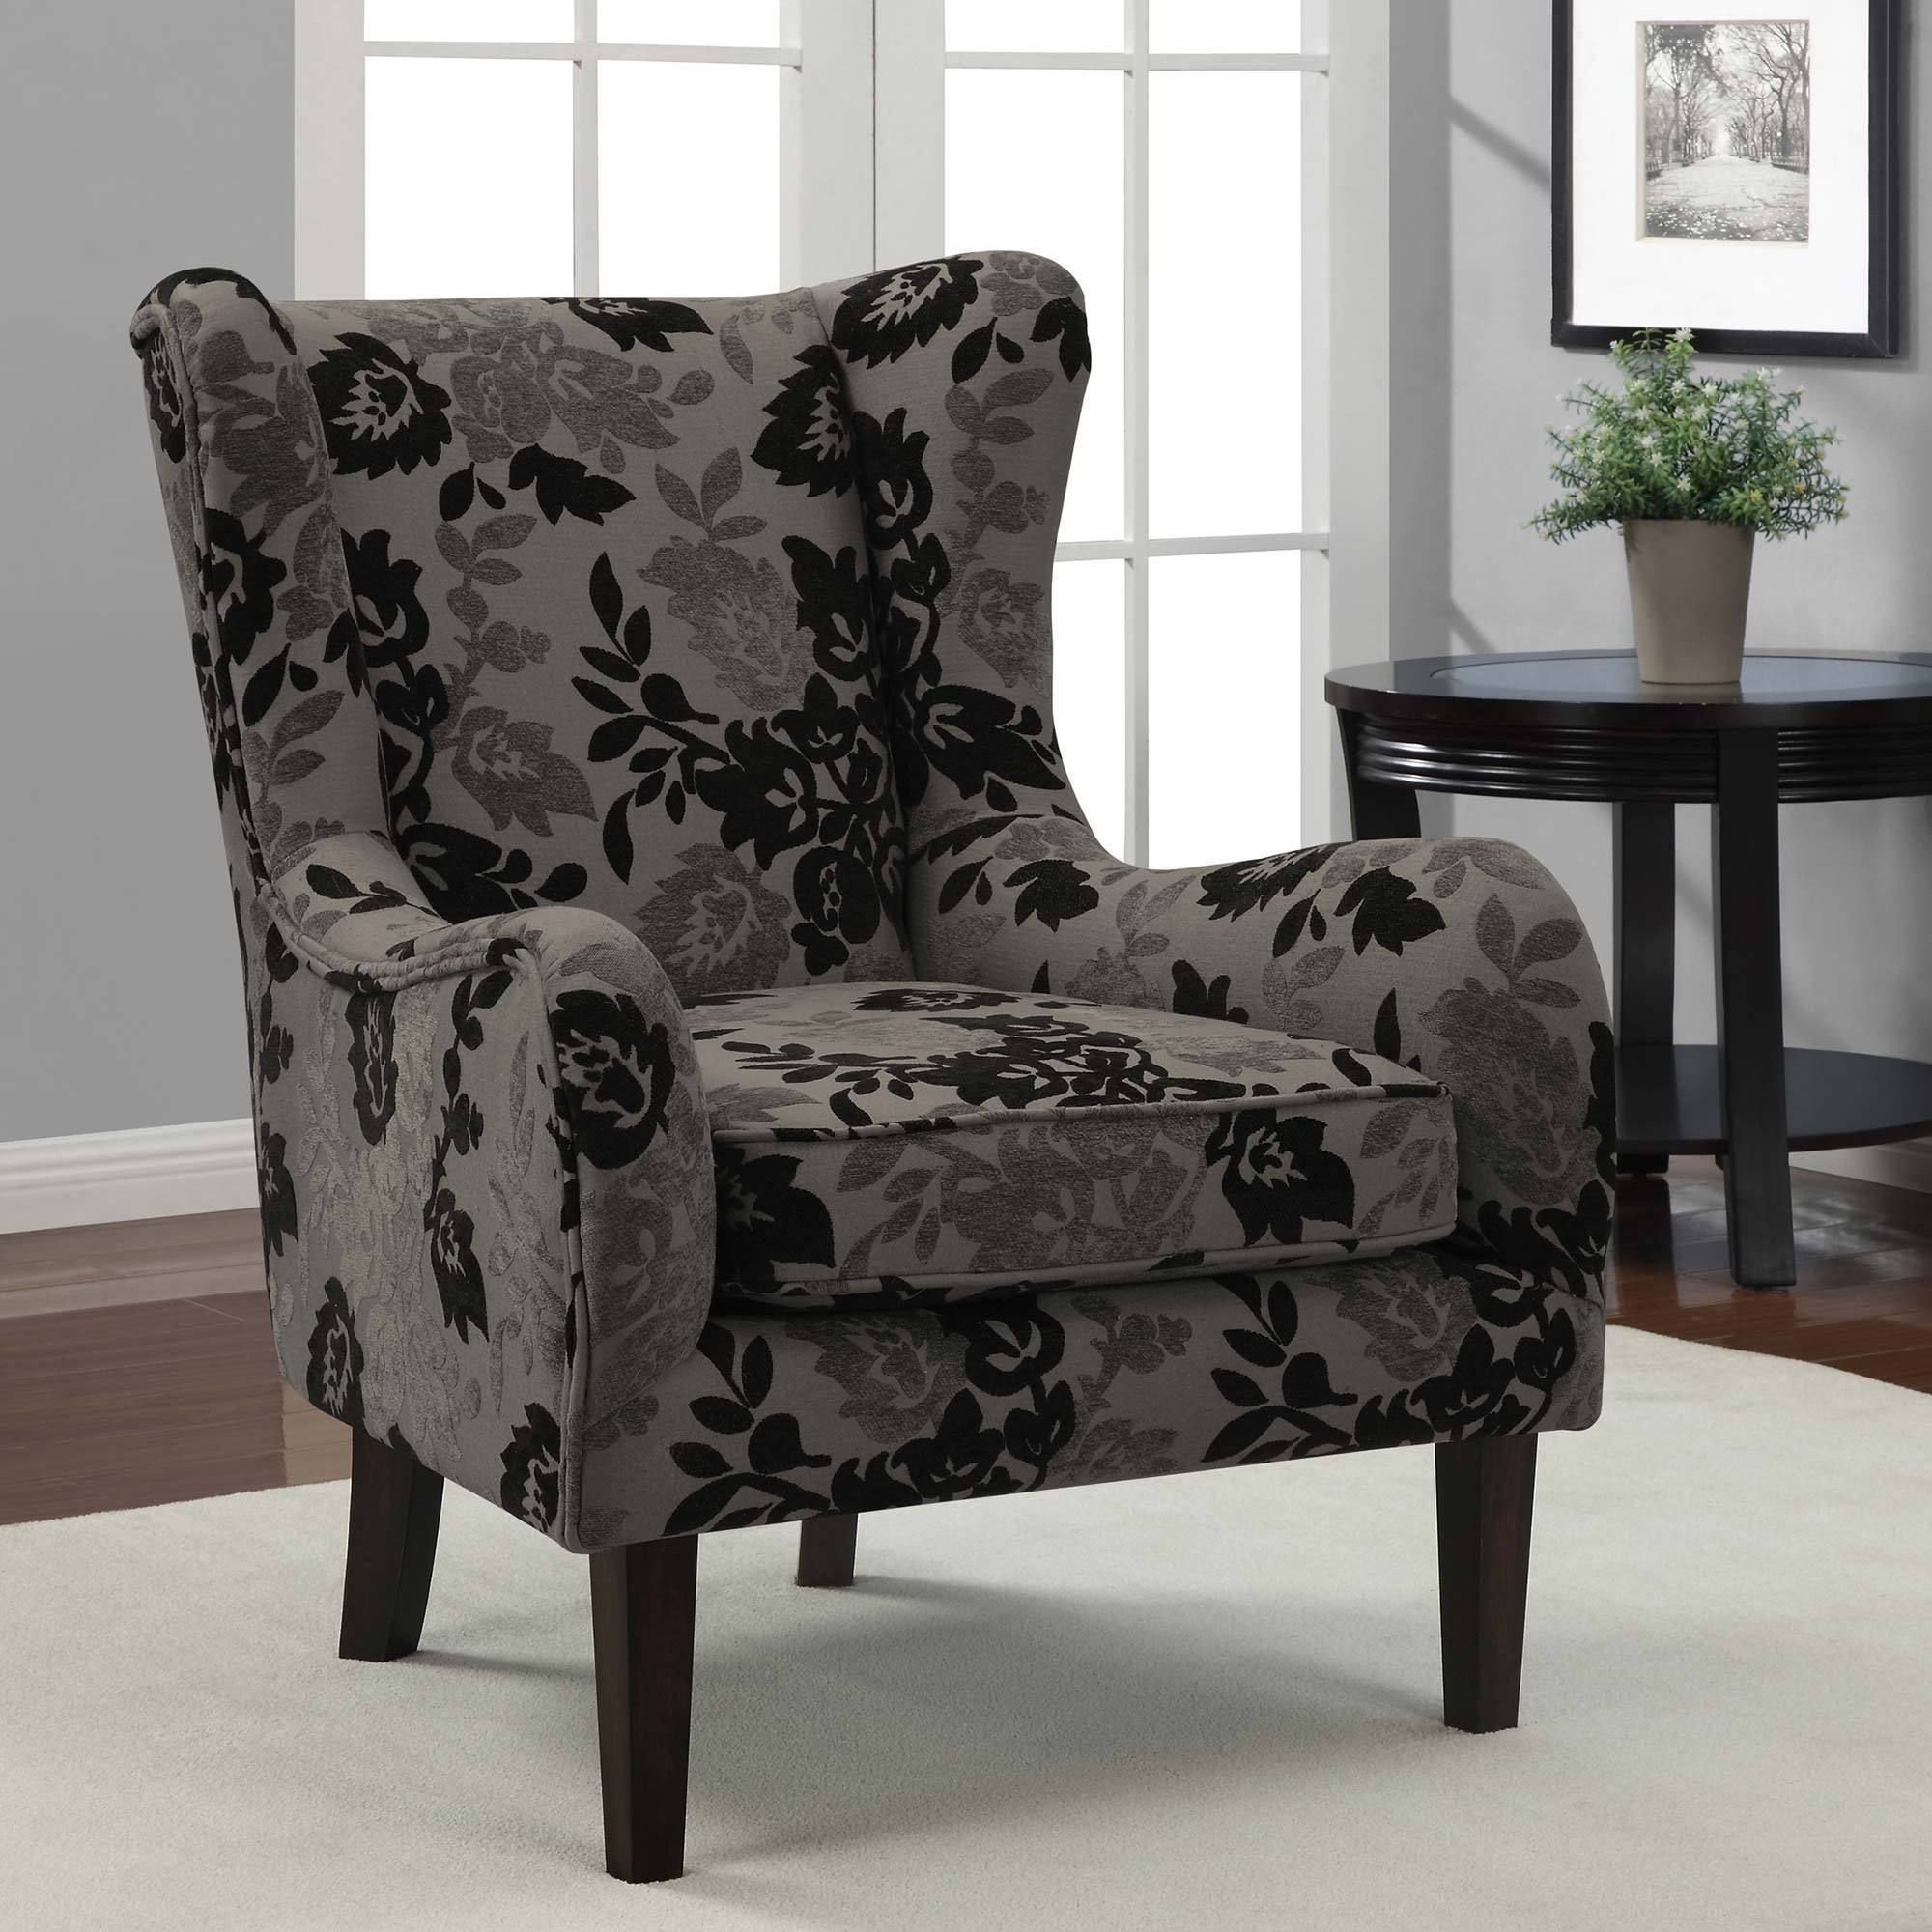 Floral Wingback Chair This Chair Features A Classic Wing Chair Design With A